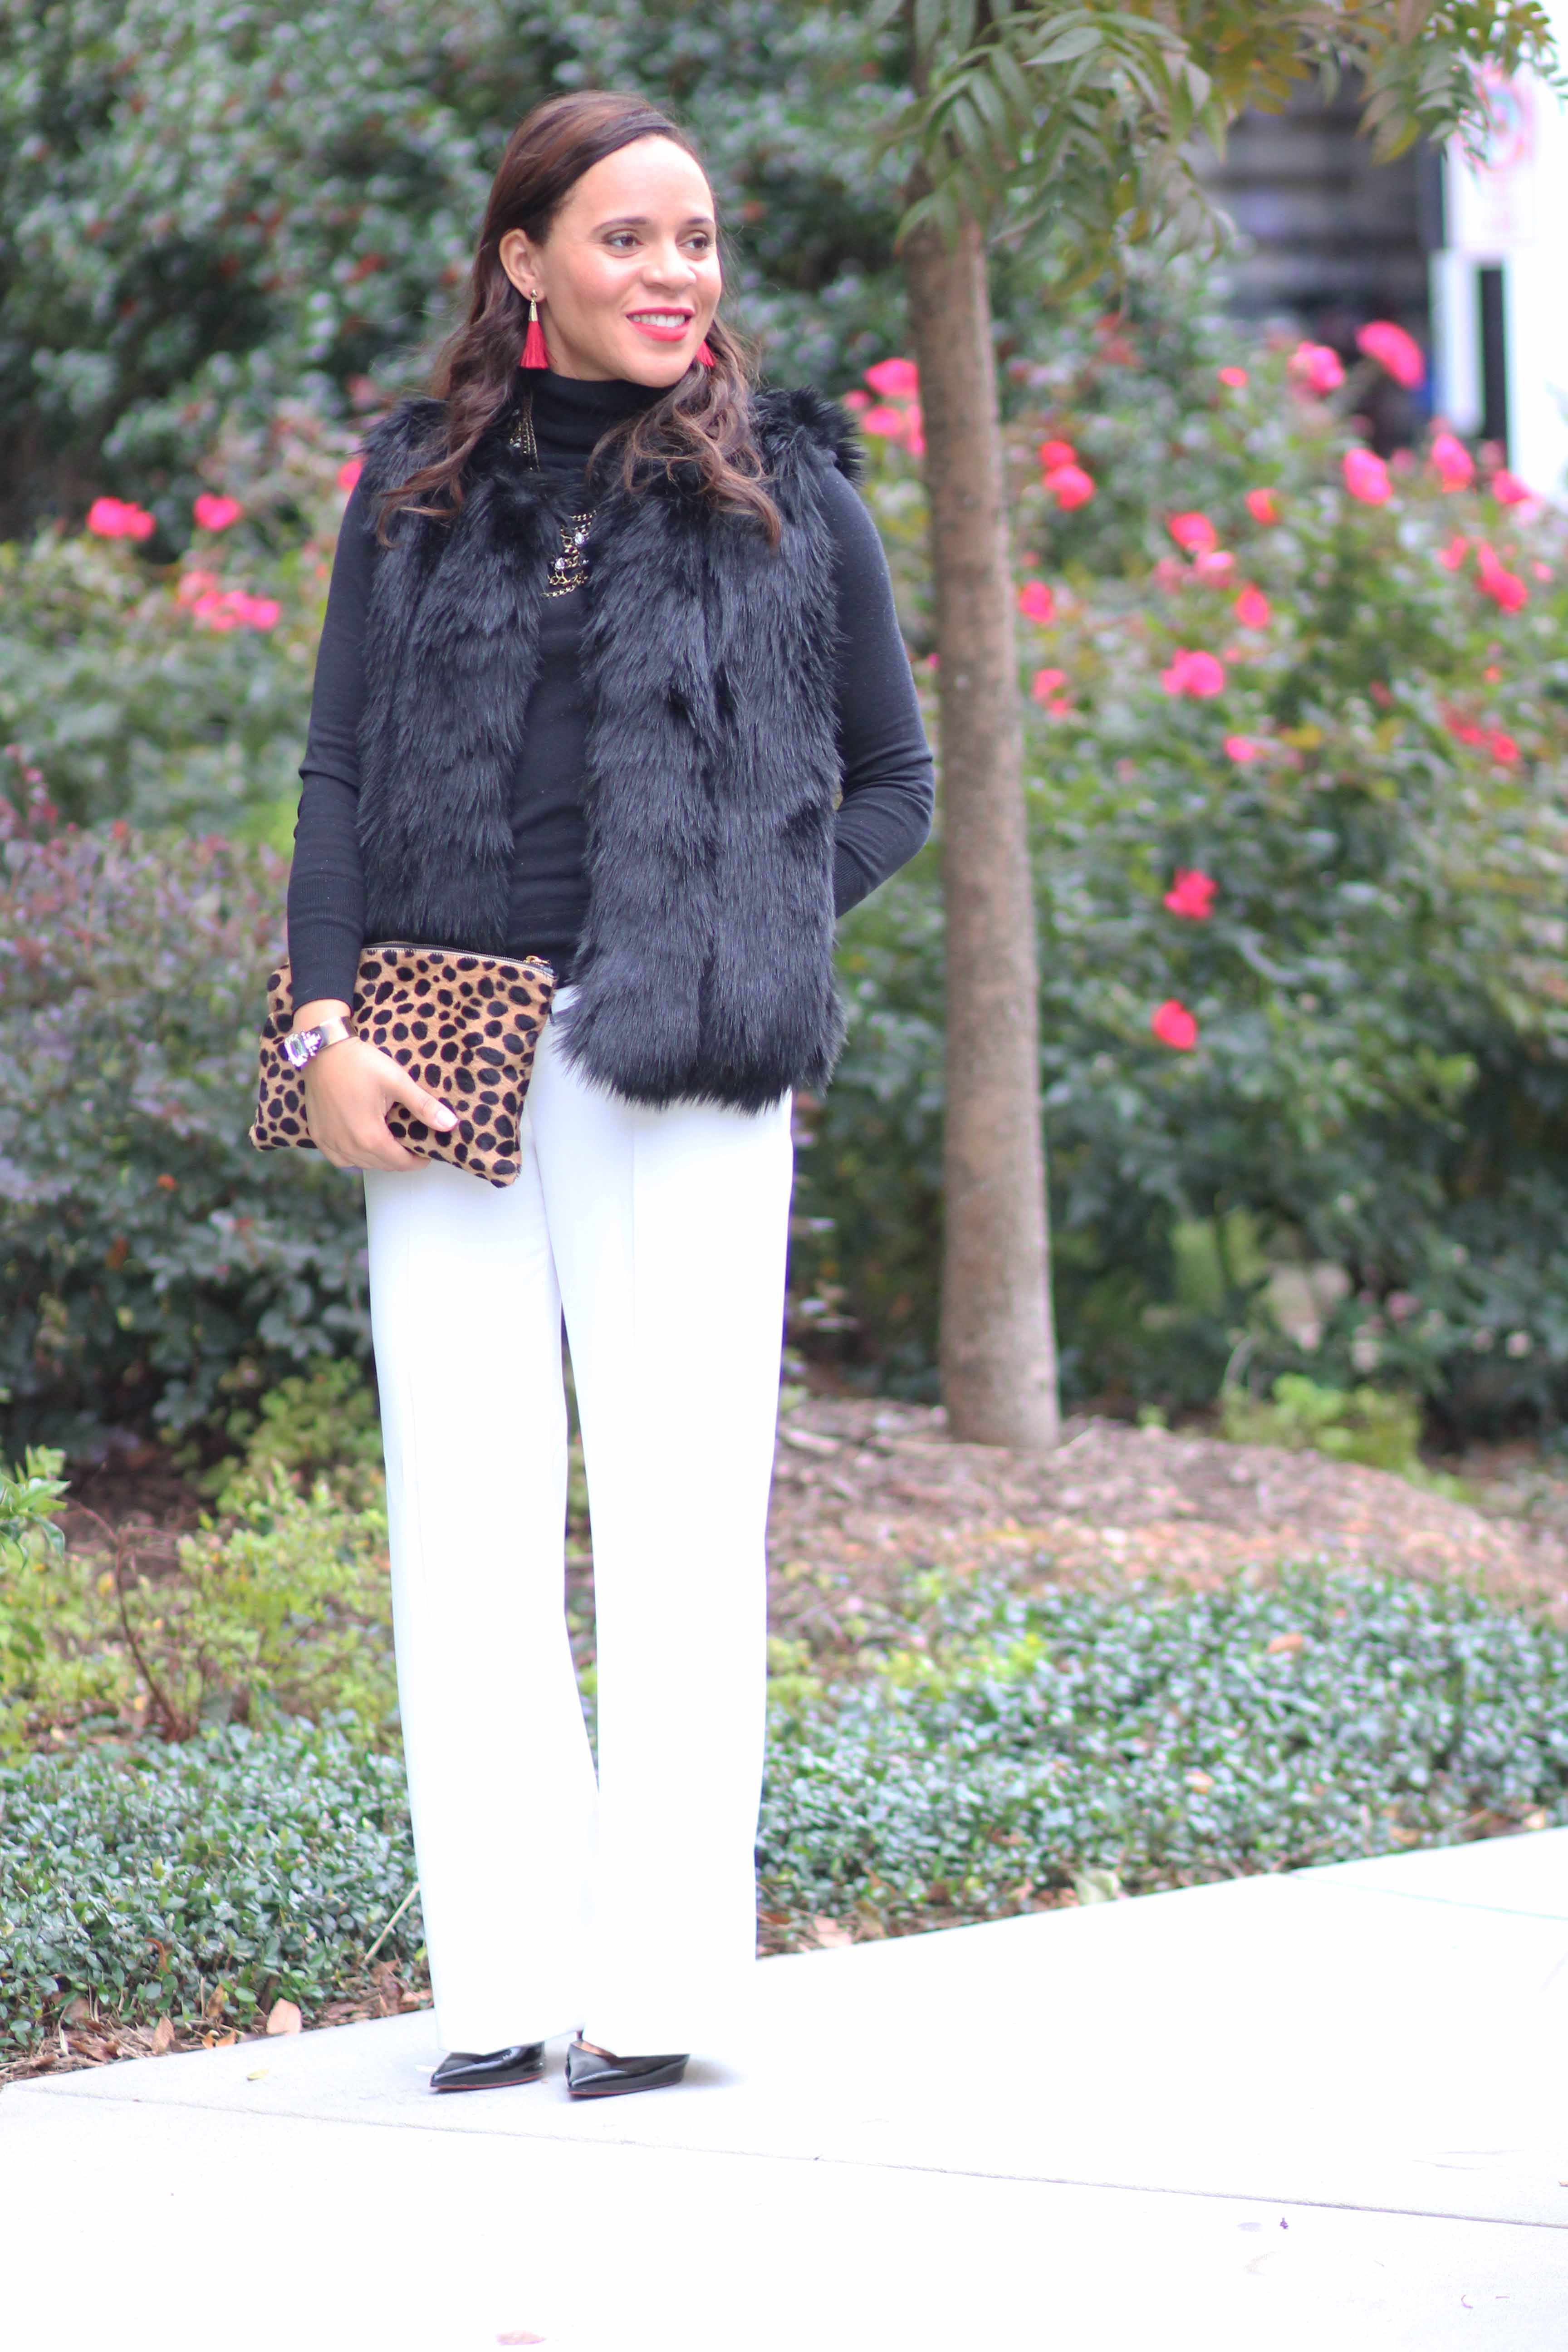 c4e4d35d3d7c6 Holiday Office Party Outfit Ideas - Nicole to the Nines